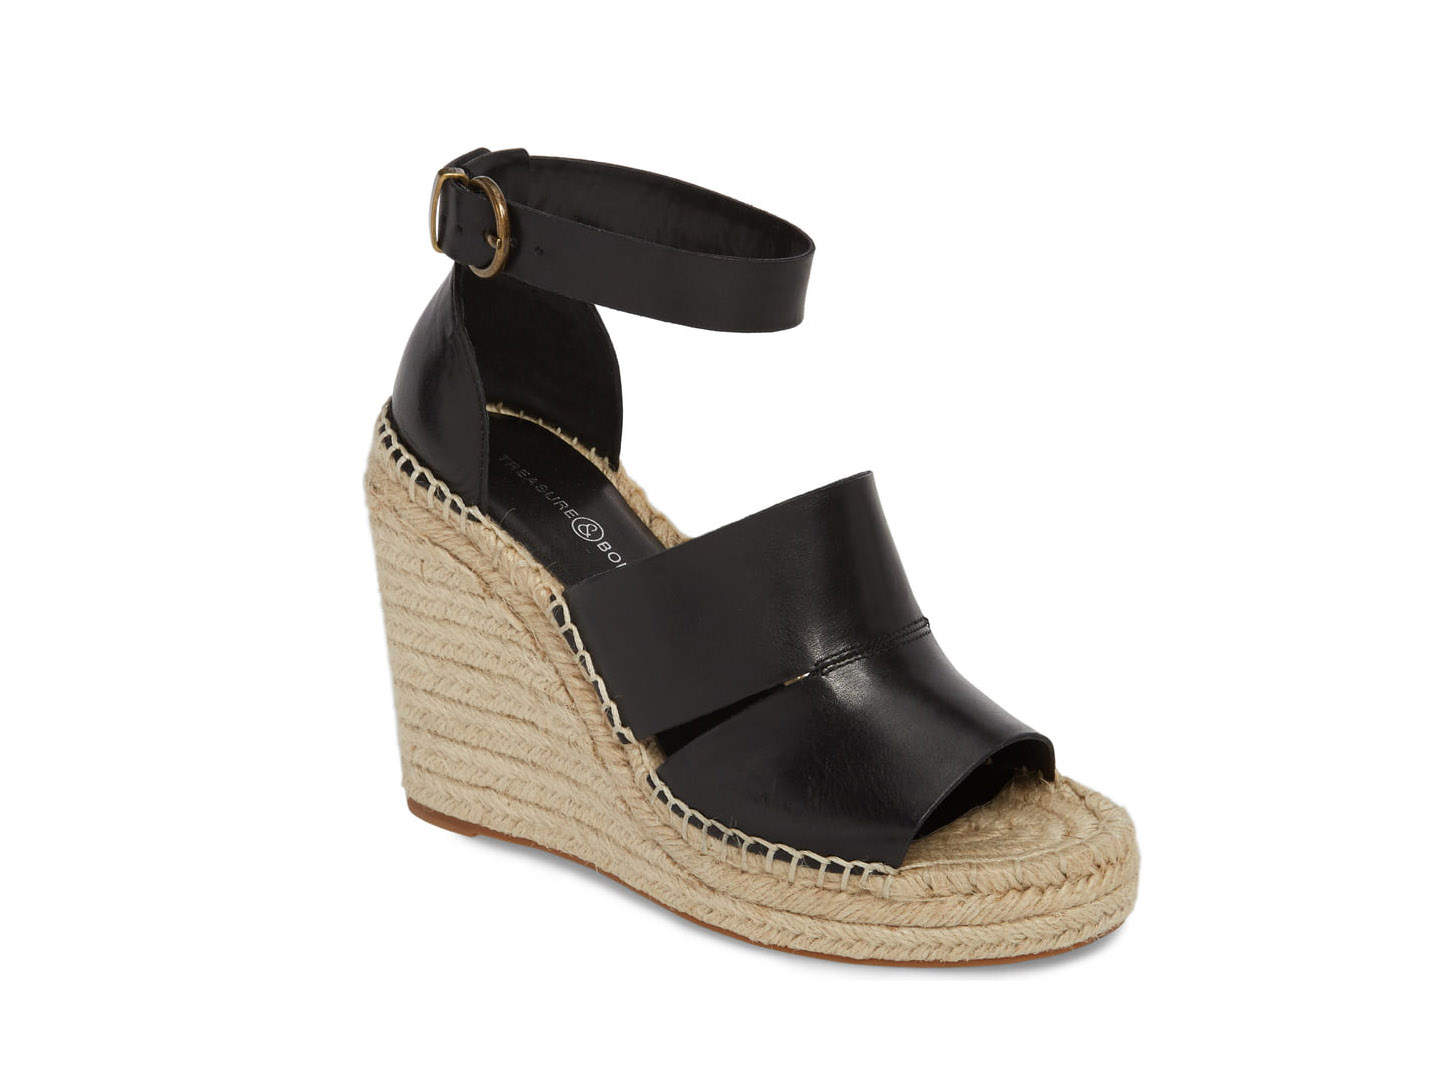 Sannibel Platform Wedge Sandal